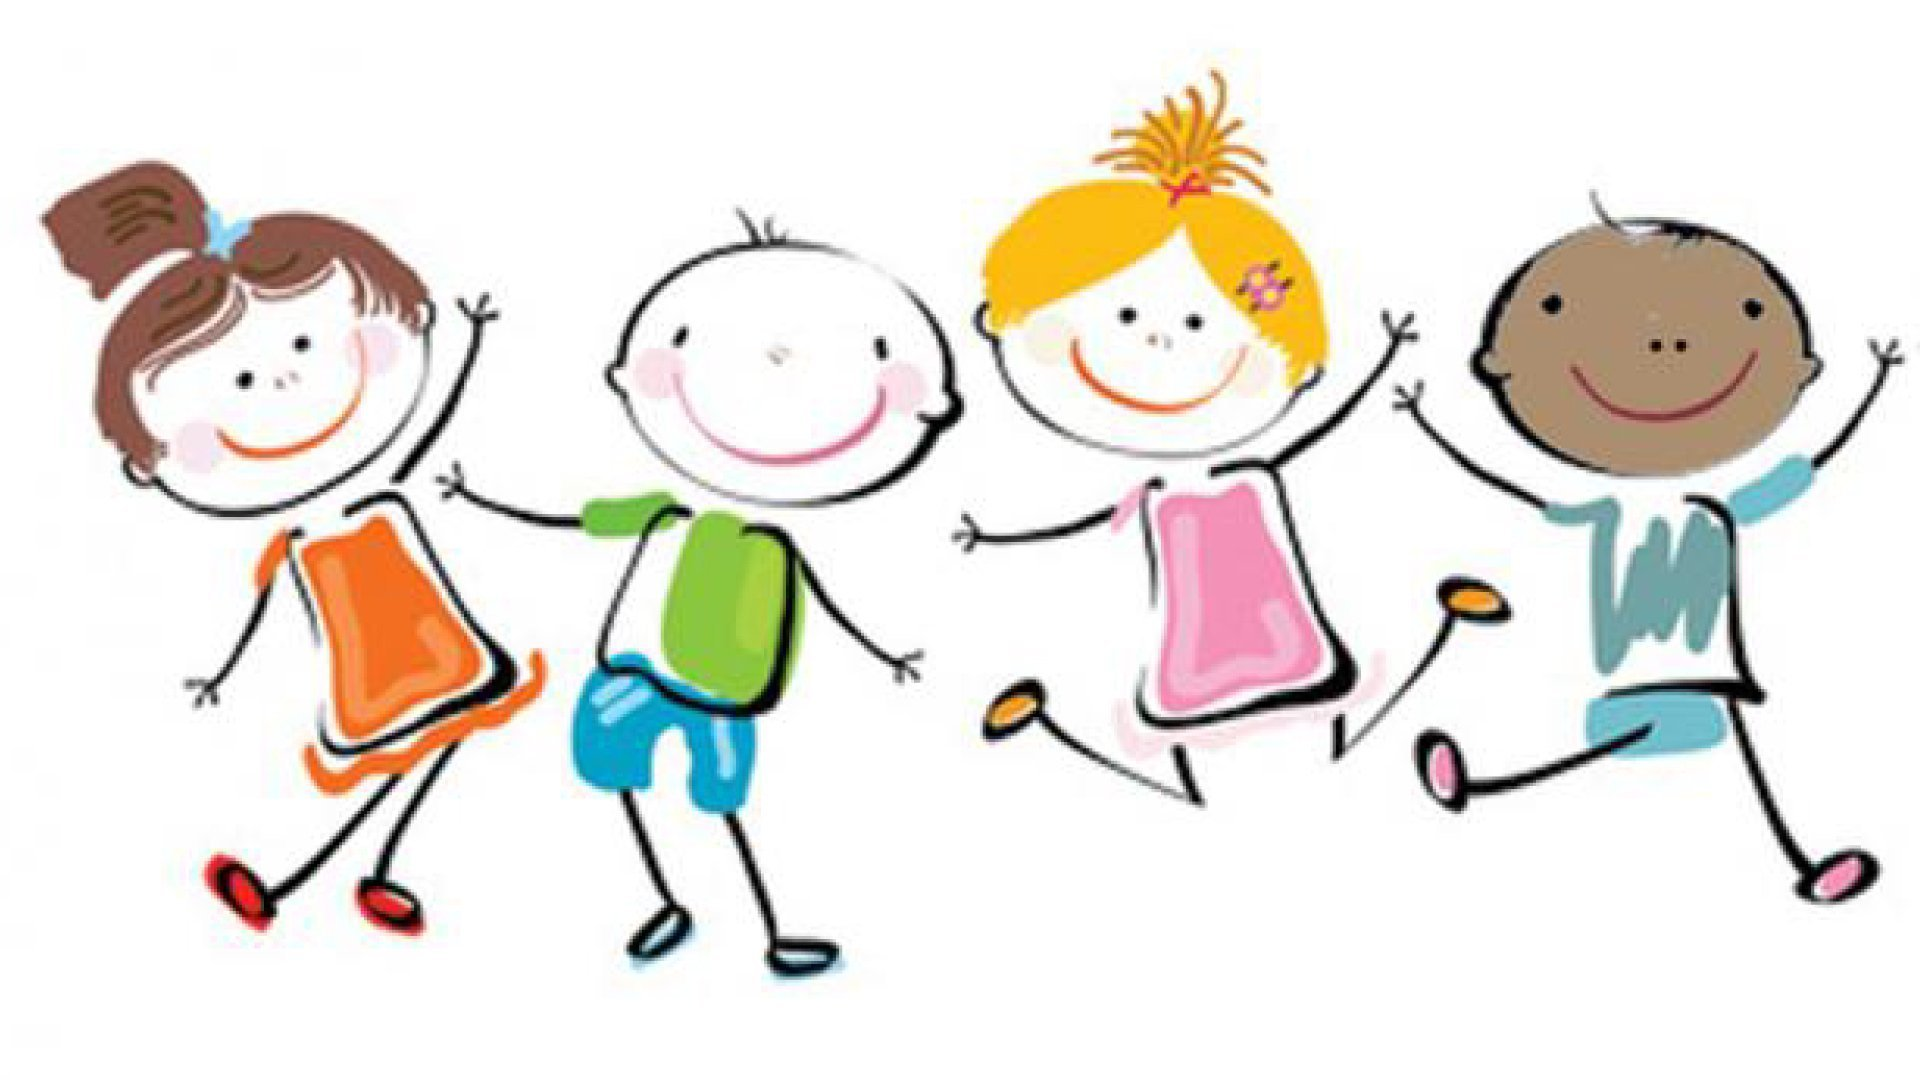 Essential oils for kids. Healthy clipart happy healthy